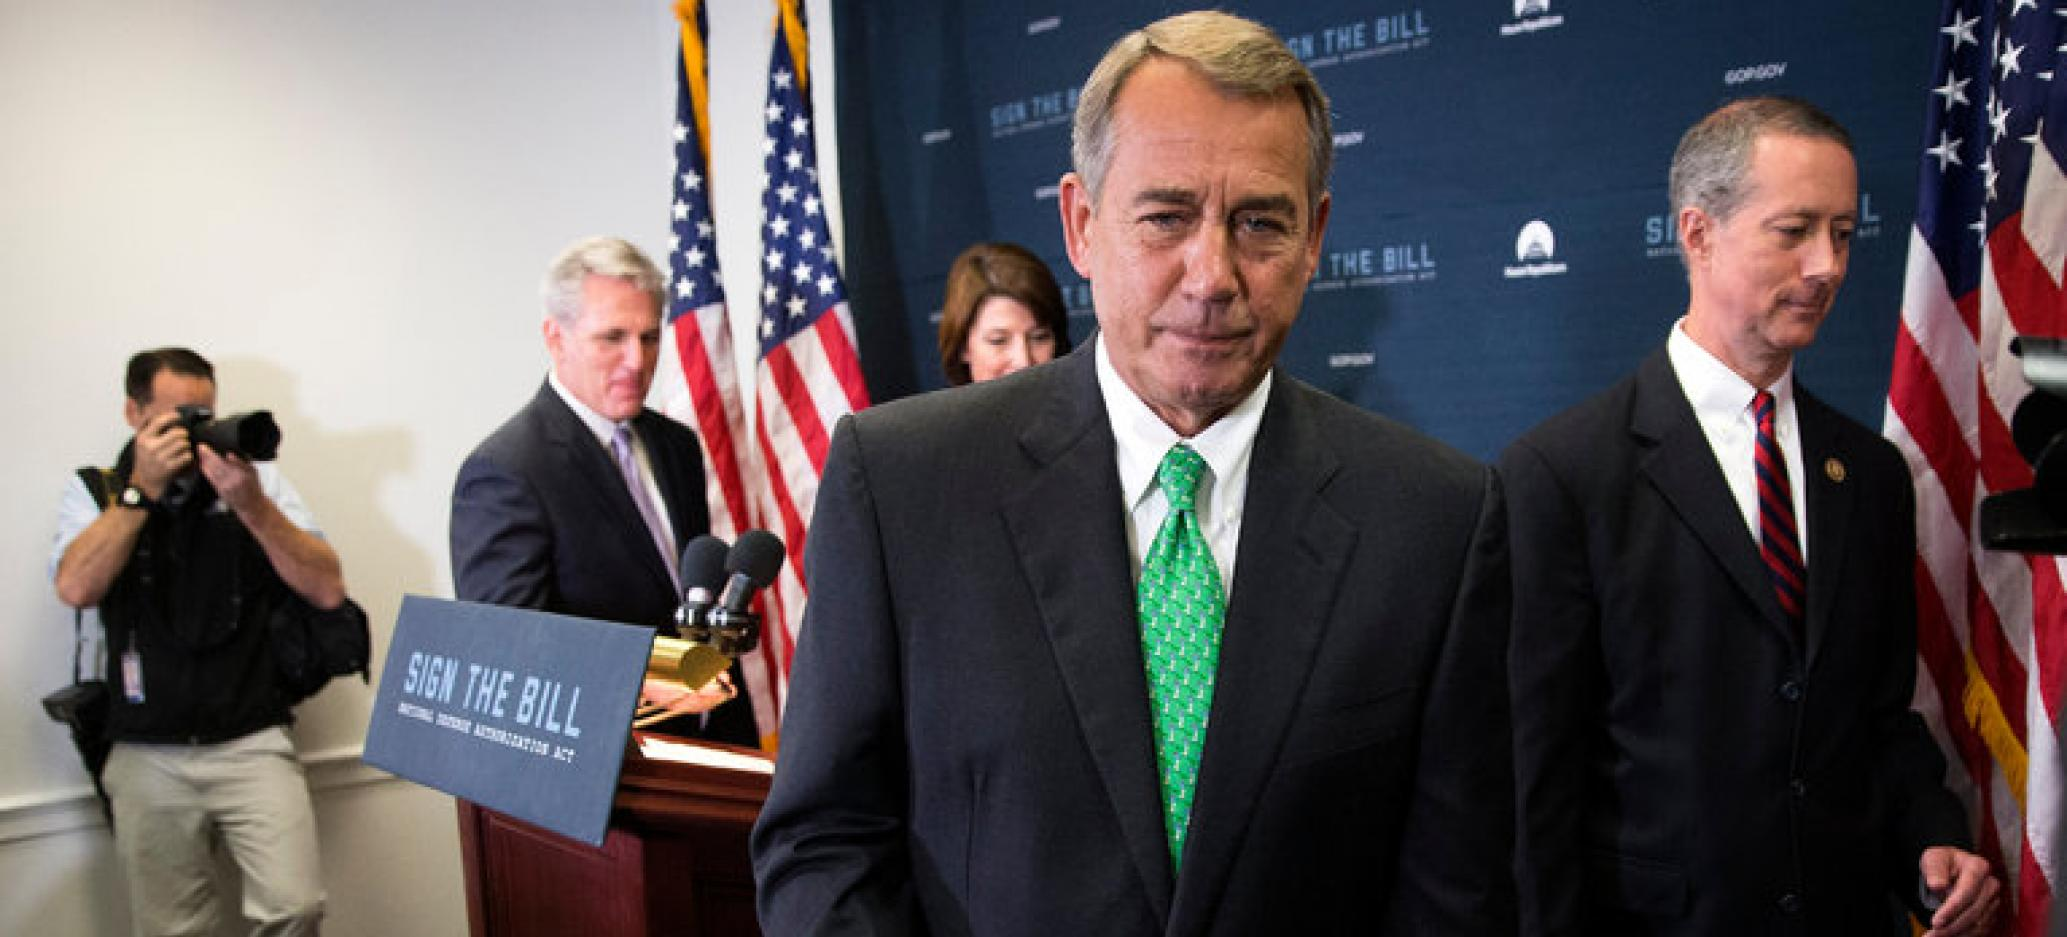 Congress Agreed On A Budget Deal